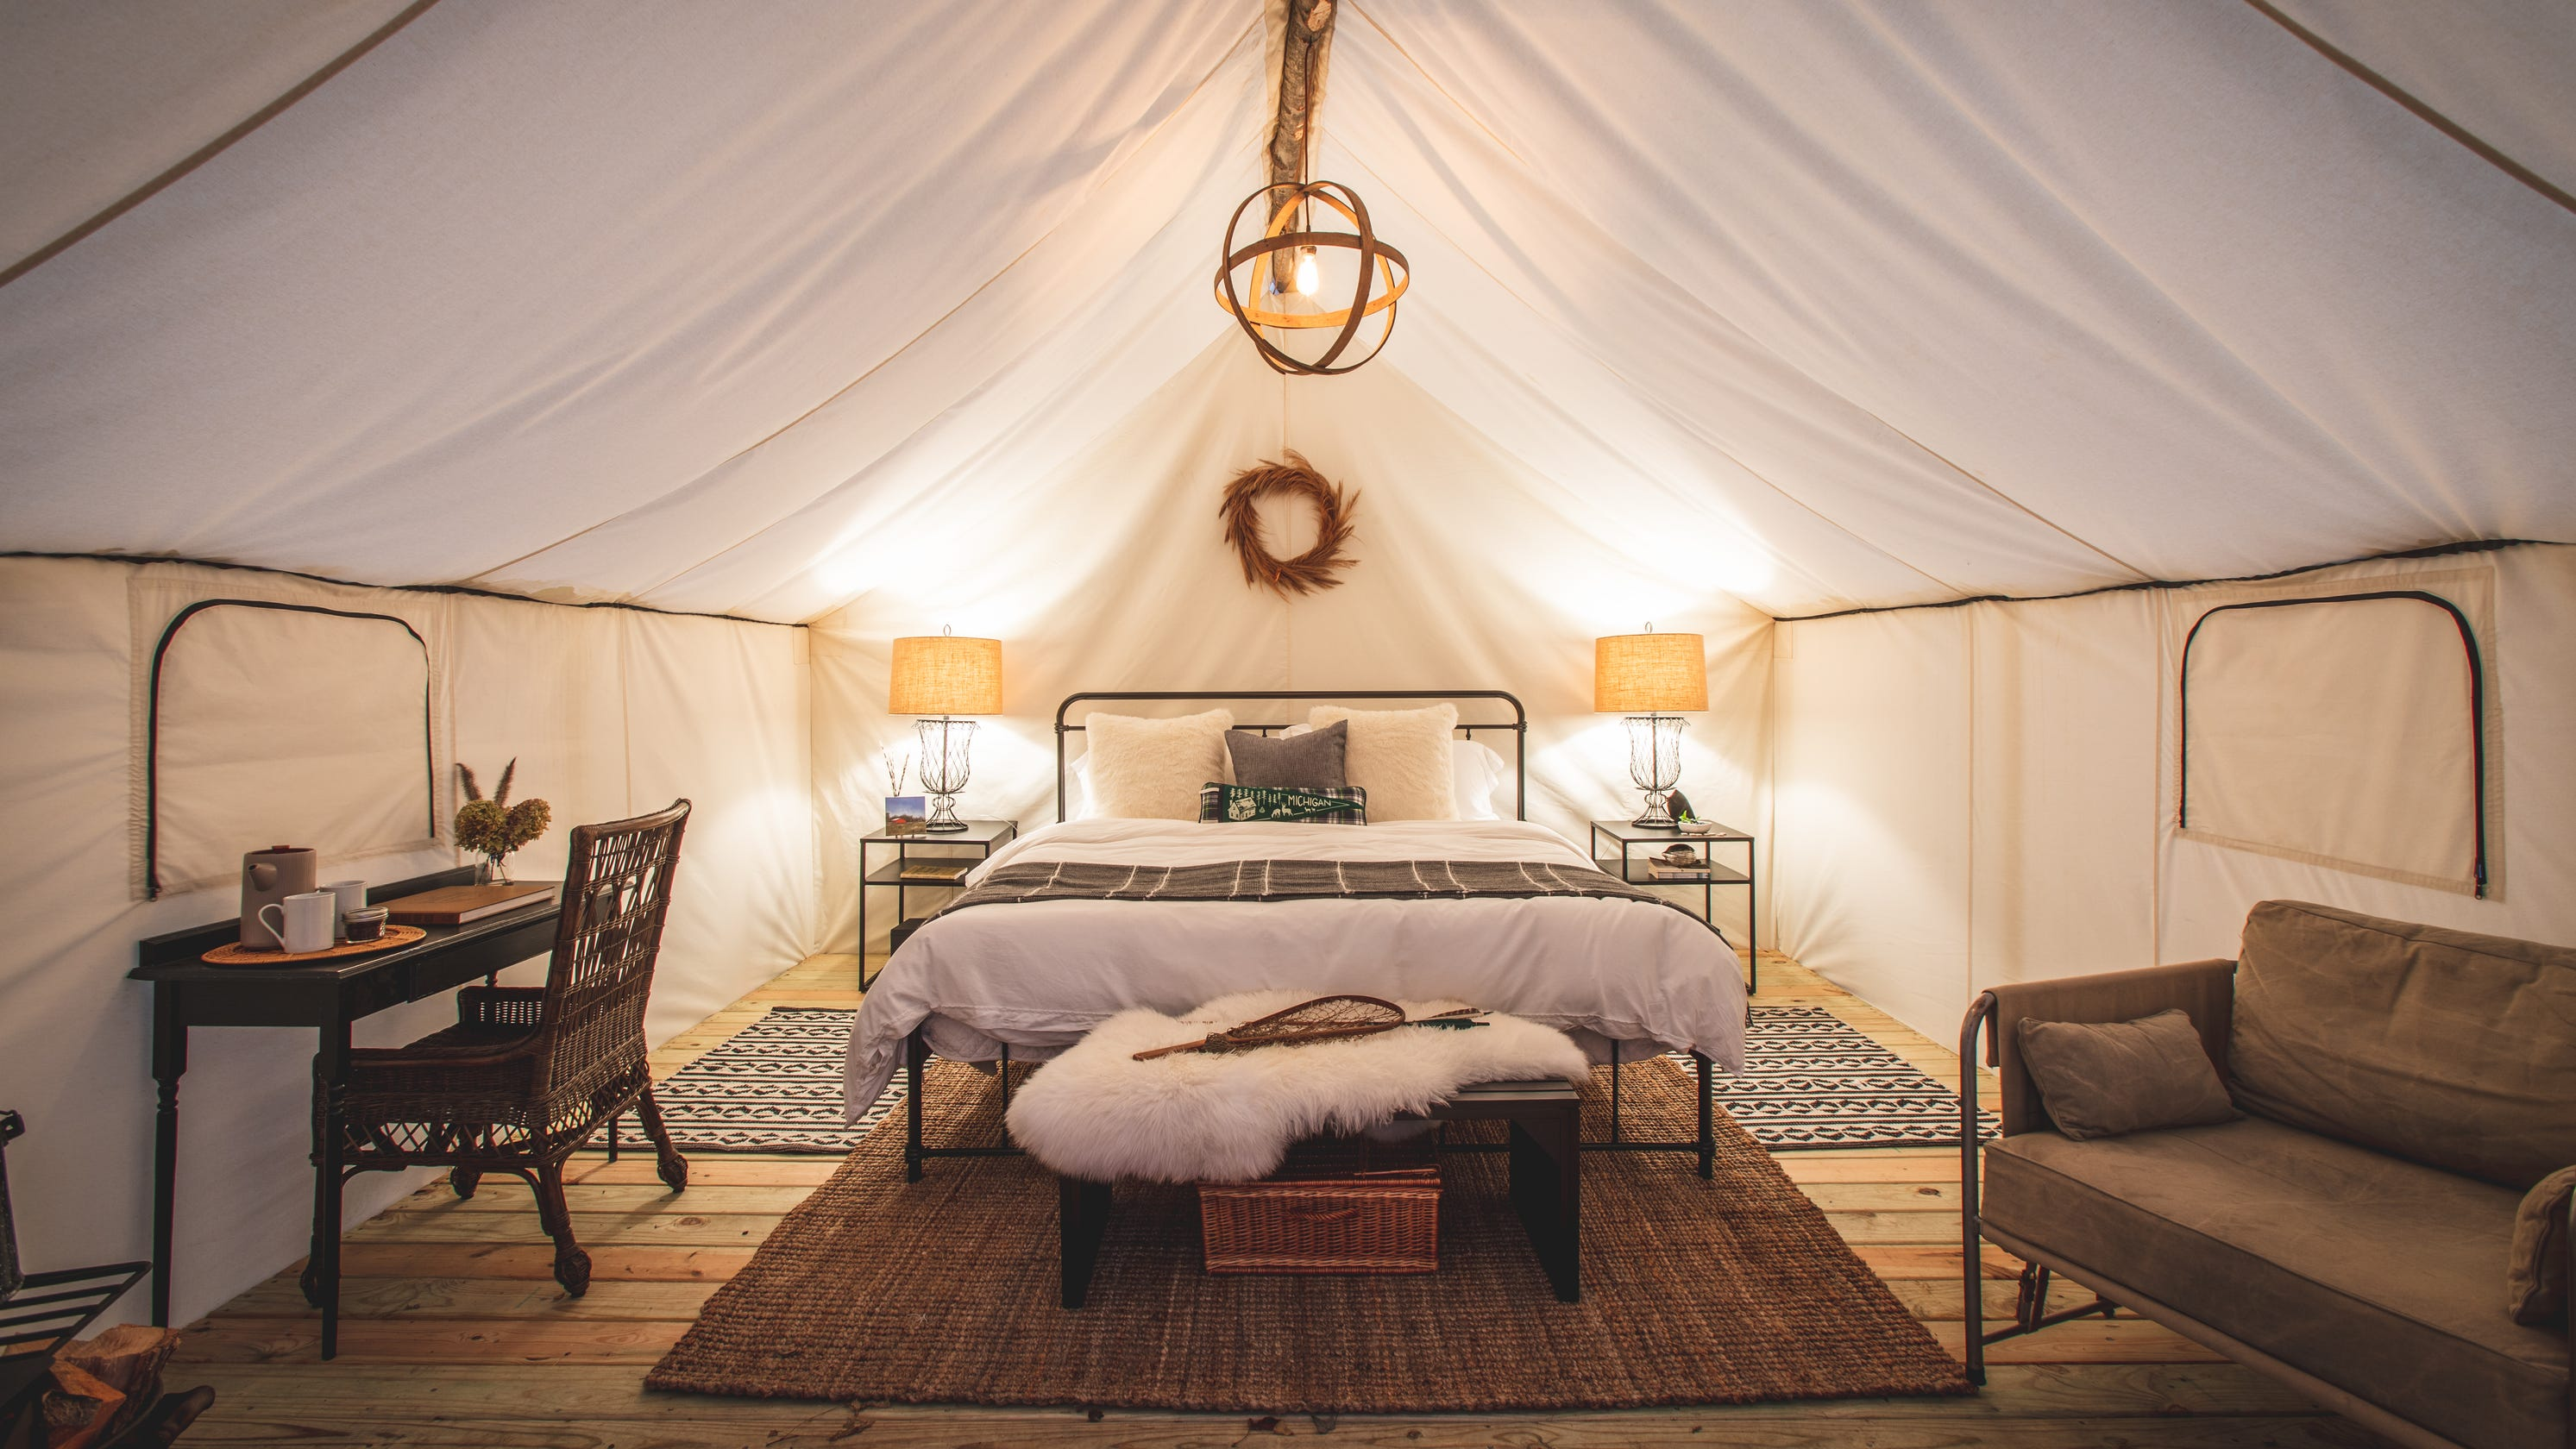 Glamping in Michigan: South Haven blueberry farm adds luxury